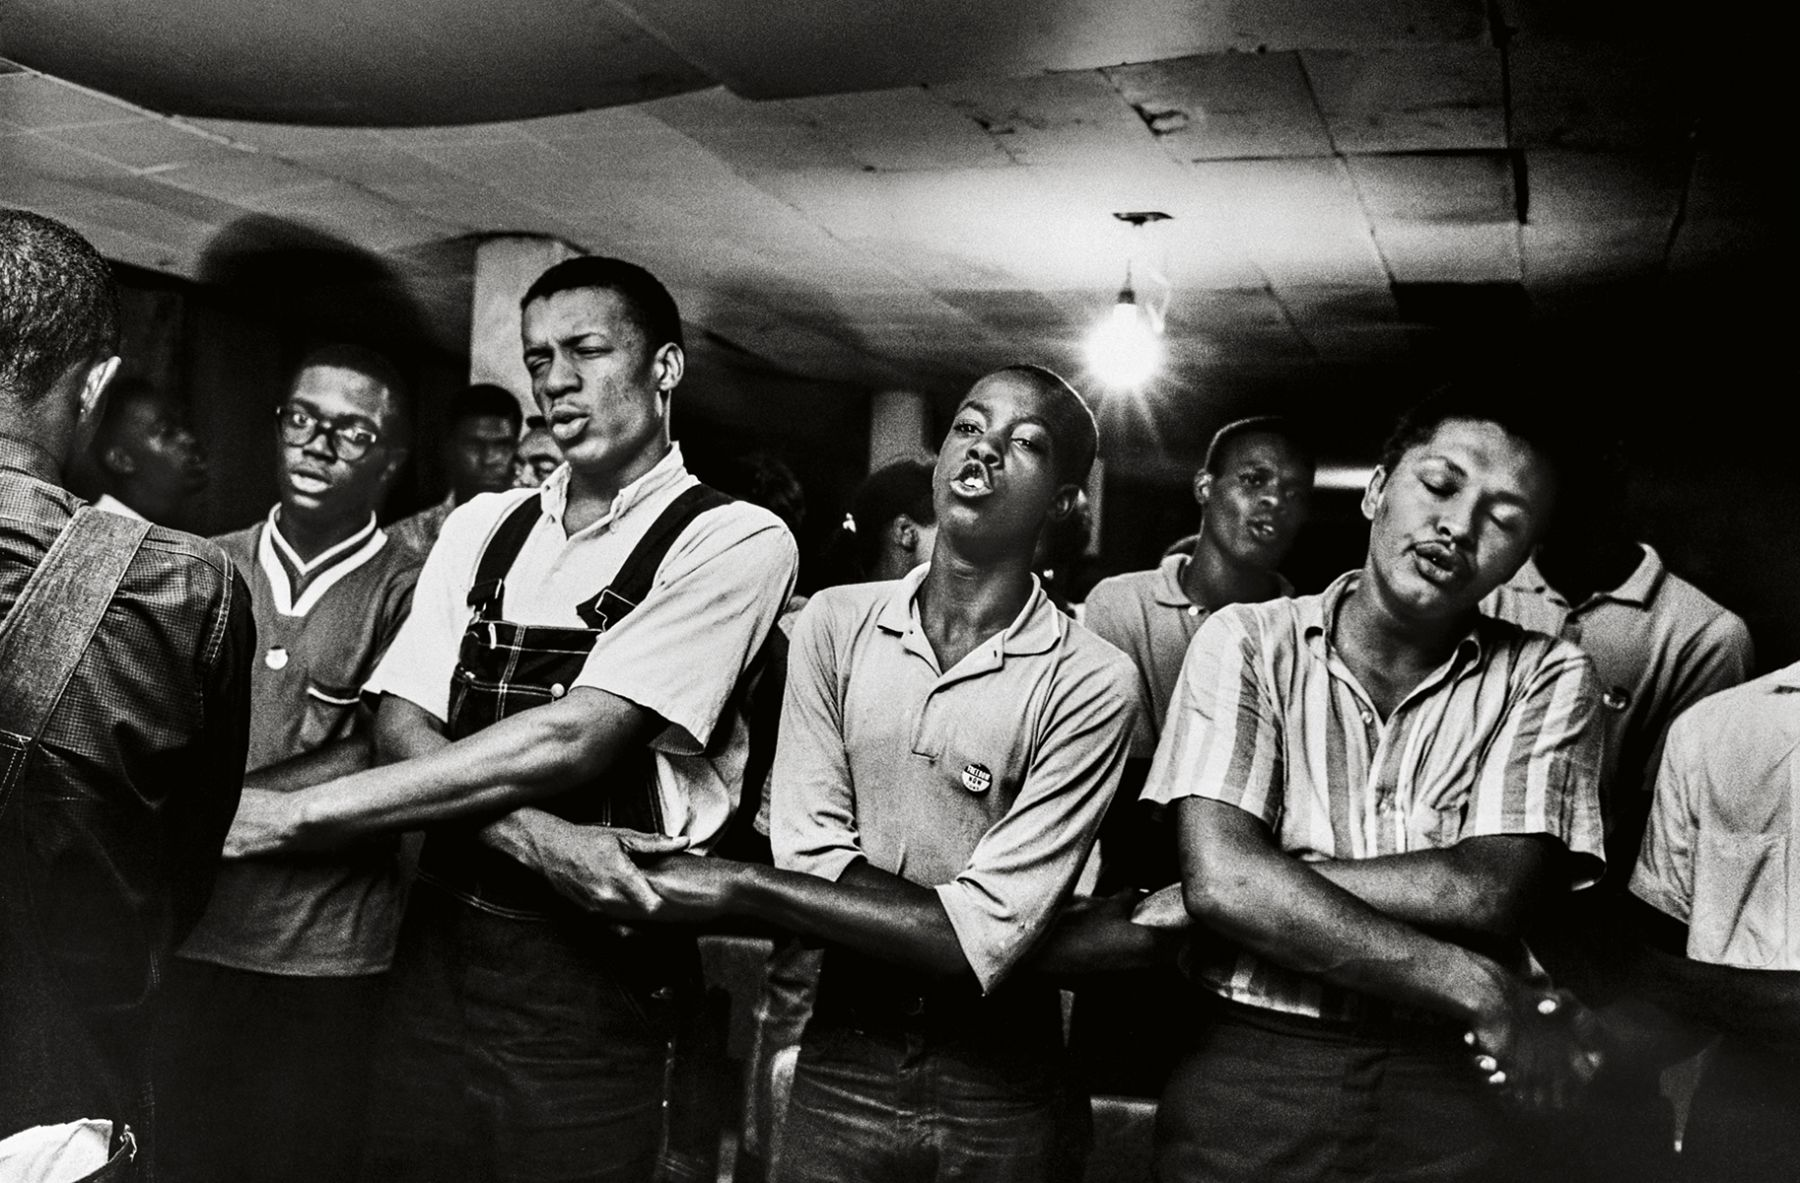 """""""We Shall Overcome,"""" Clarksdale, Mississippi, 1965, 16 x 20 Inches, Silver Gelatin Photograph, Edition of 25"""